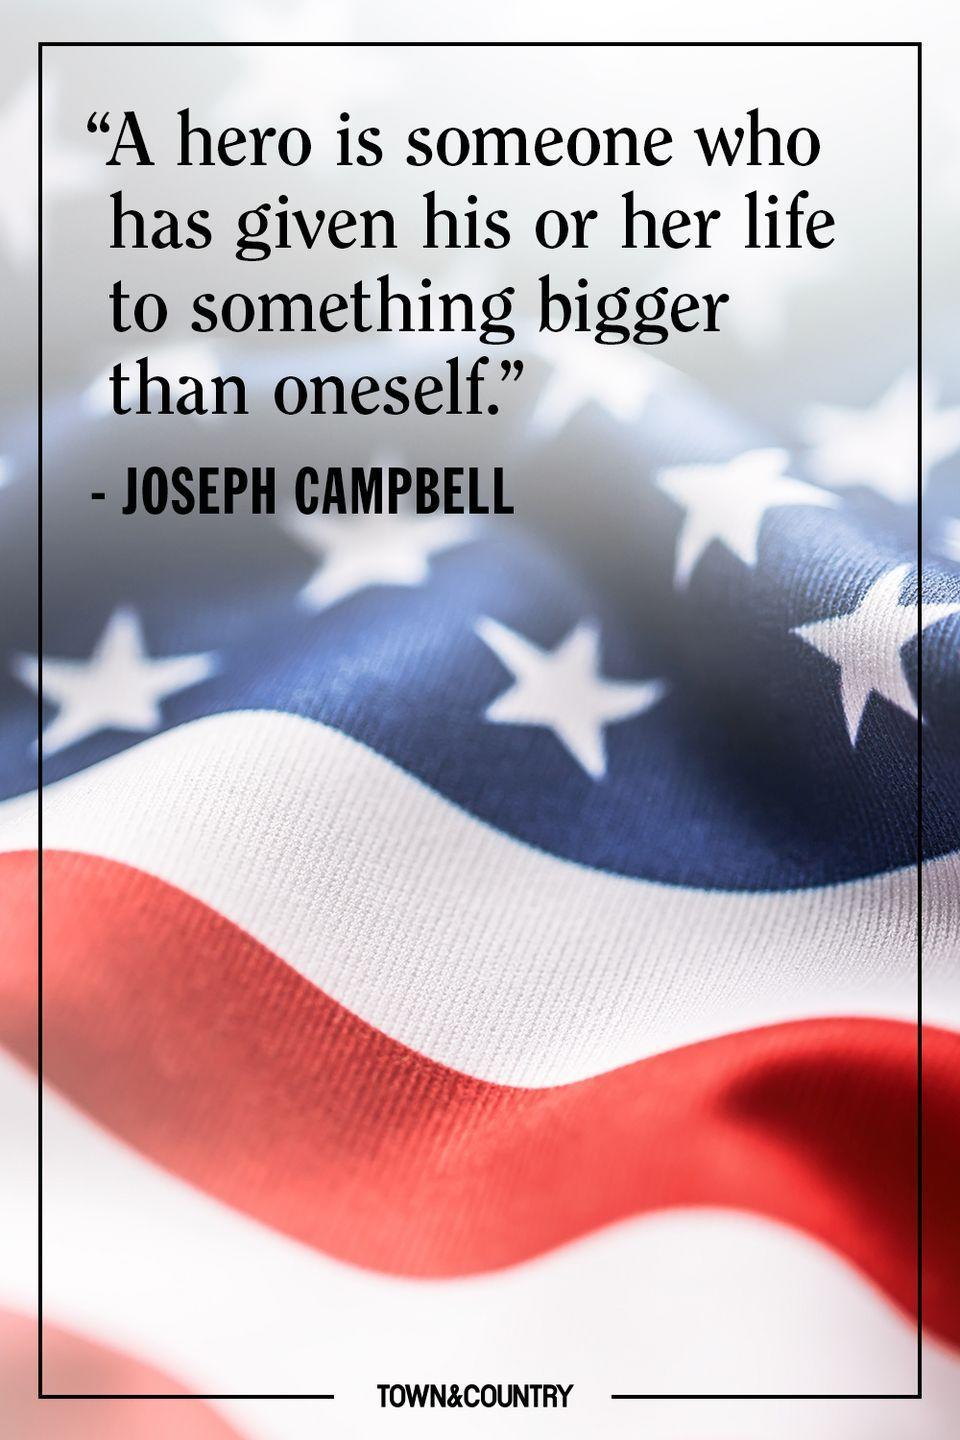 "<p>""A hero is someone who has given his or her life to something bigger than oneself.""</p><p>– Joseph Campbell</p>"